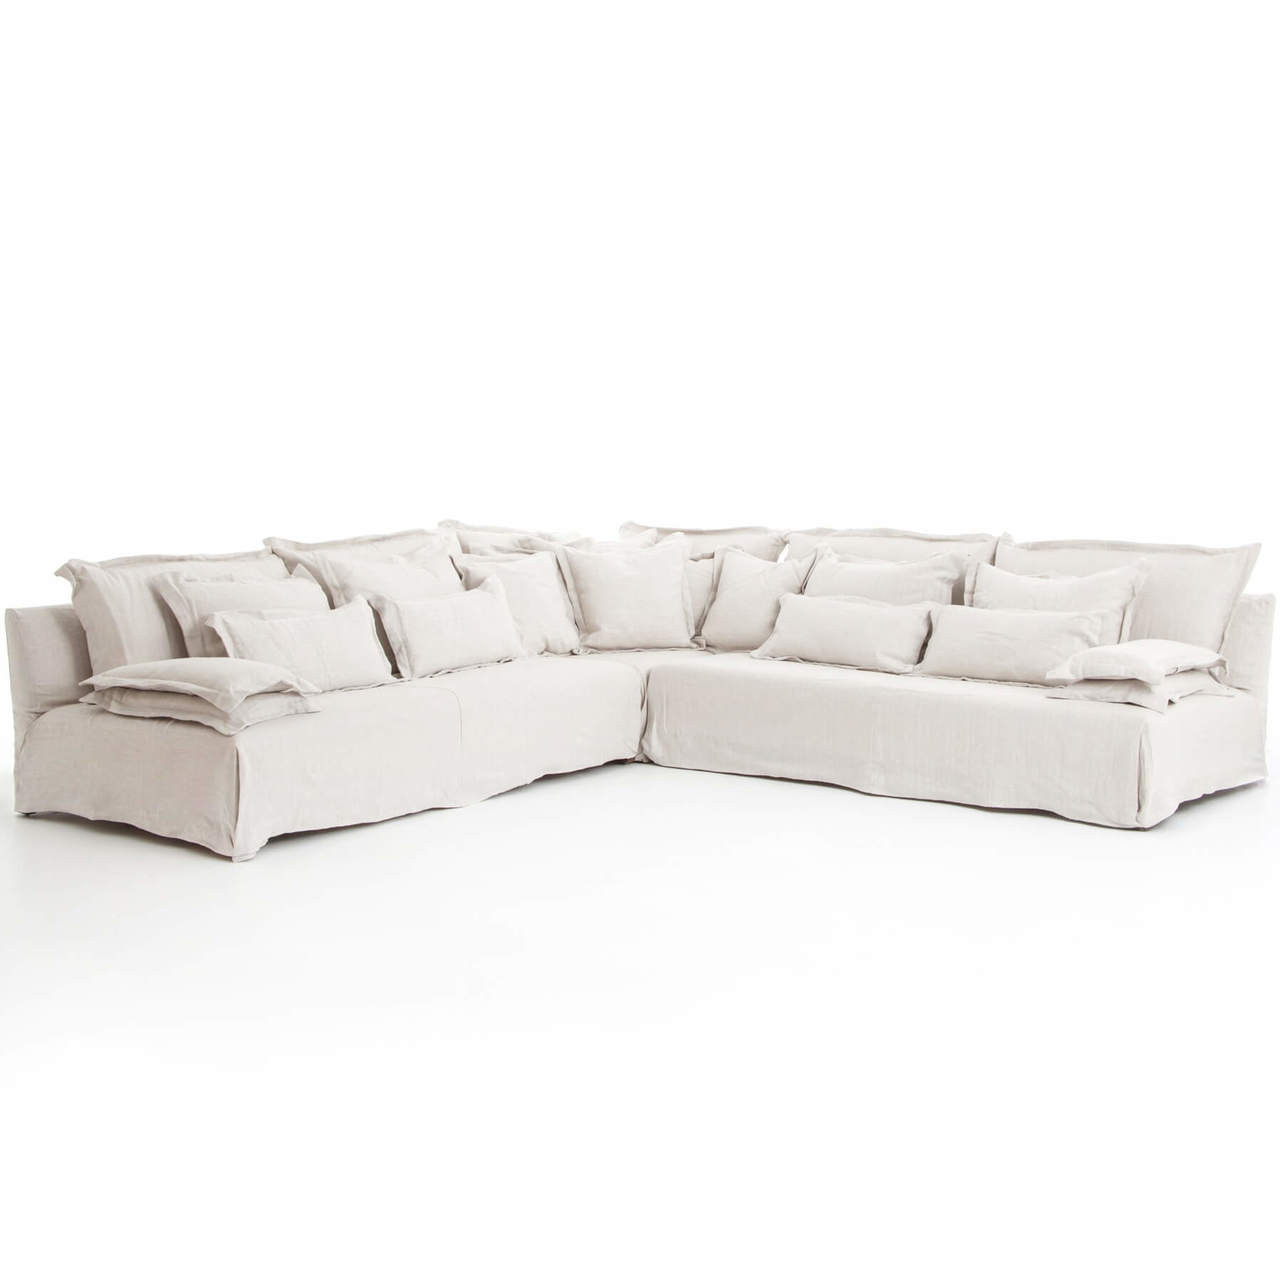 Attrayant Esquire Bellevueu0027s Linen Upholstered Corner Sectional Sofa